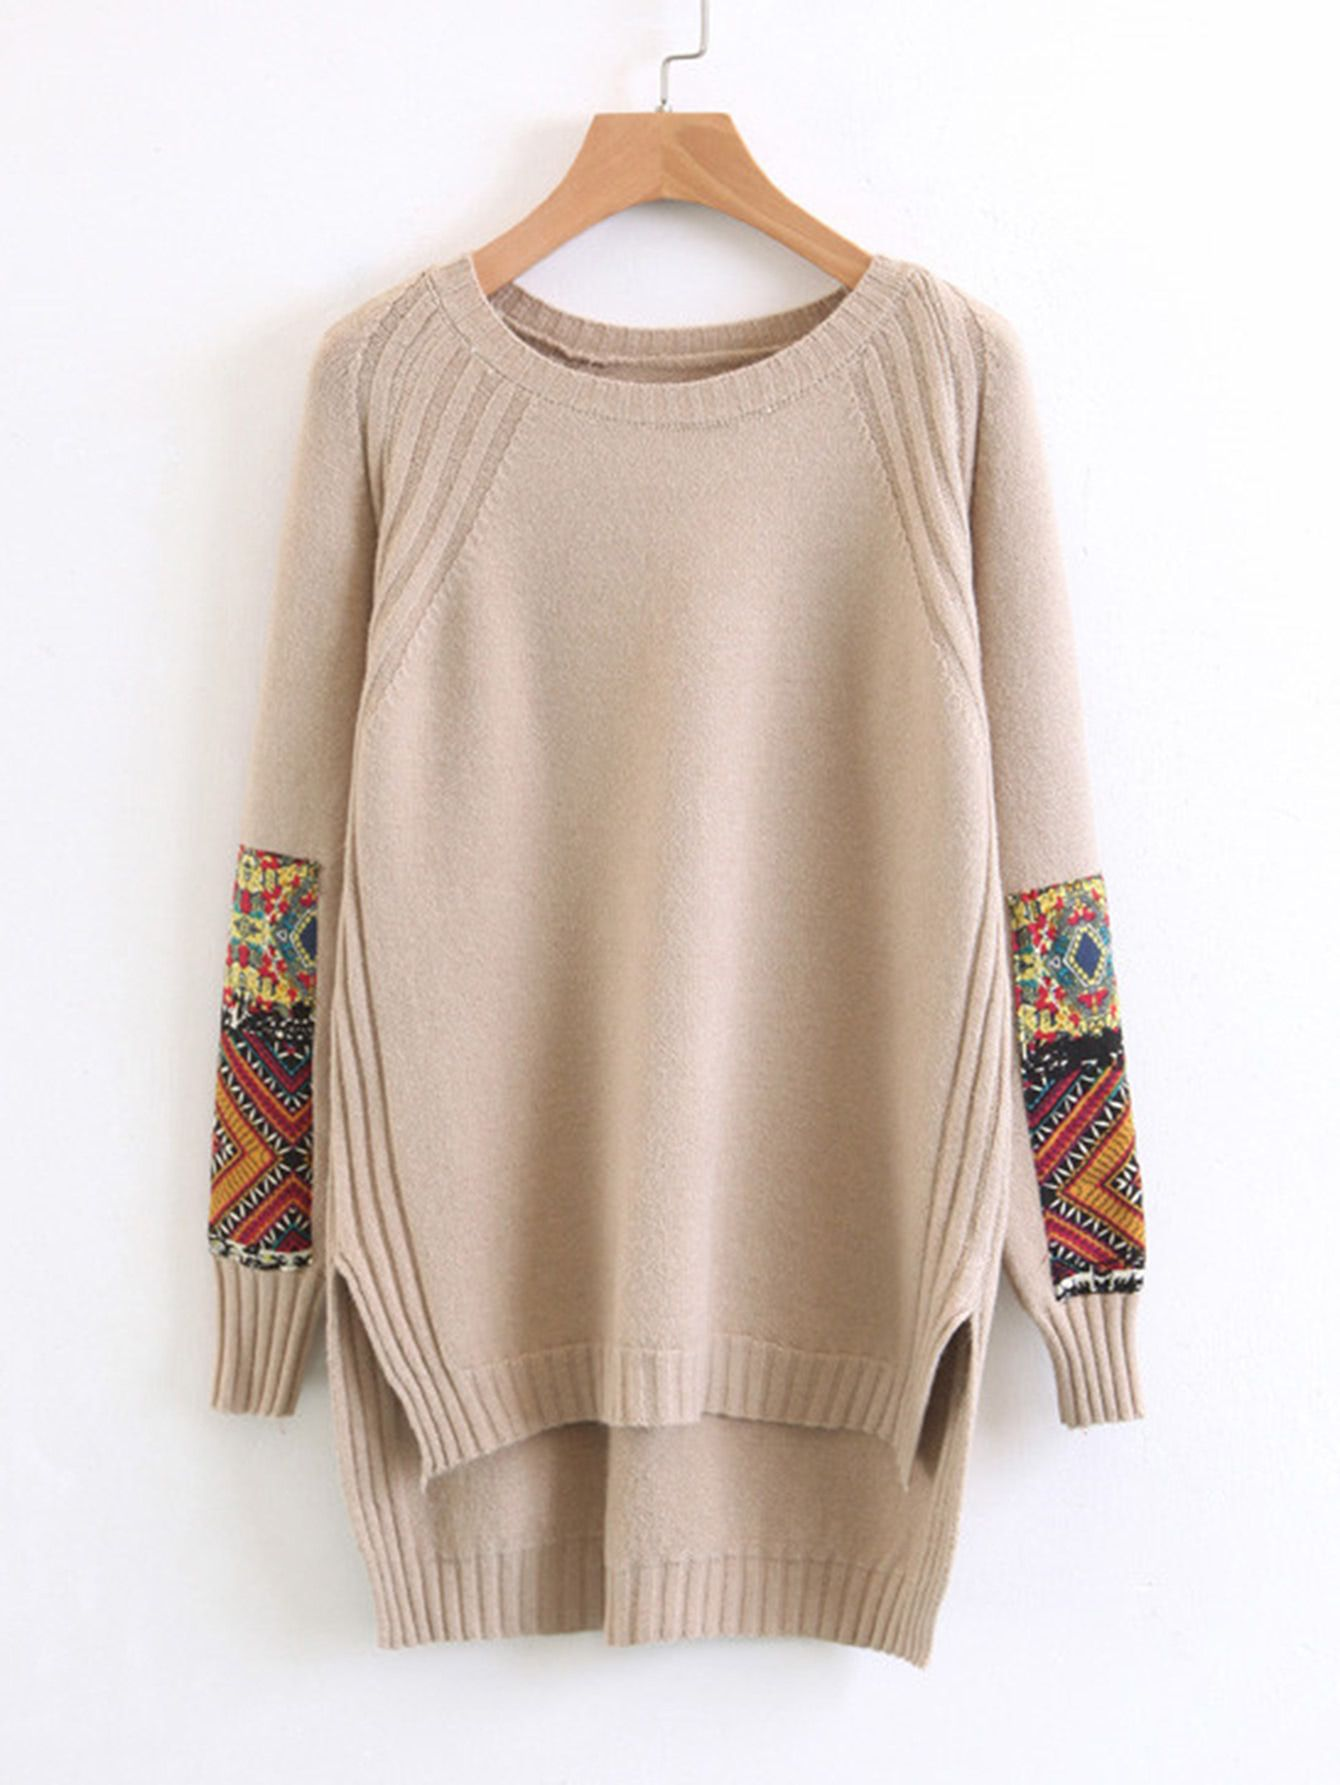 eb60c386f0bf78 Shop Contrast Patch High Low Sweater online. SheIn offers Contrast Patch  High Low Sweater   more to fit your fashionable needs.